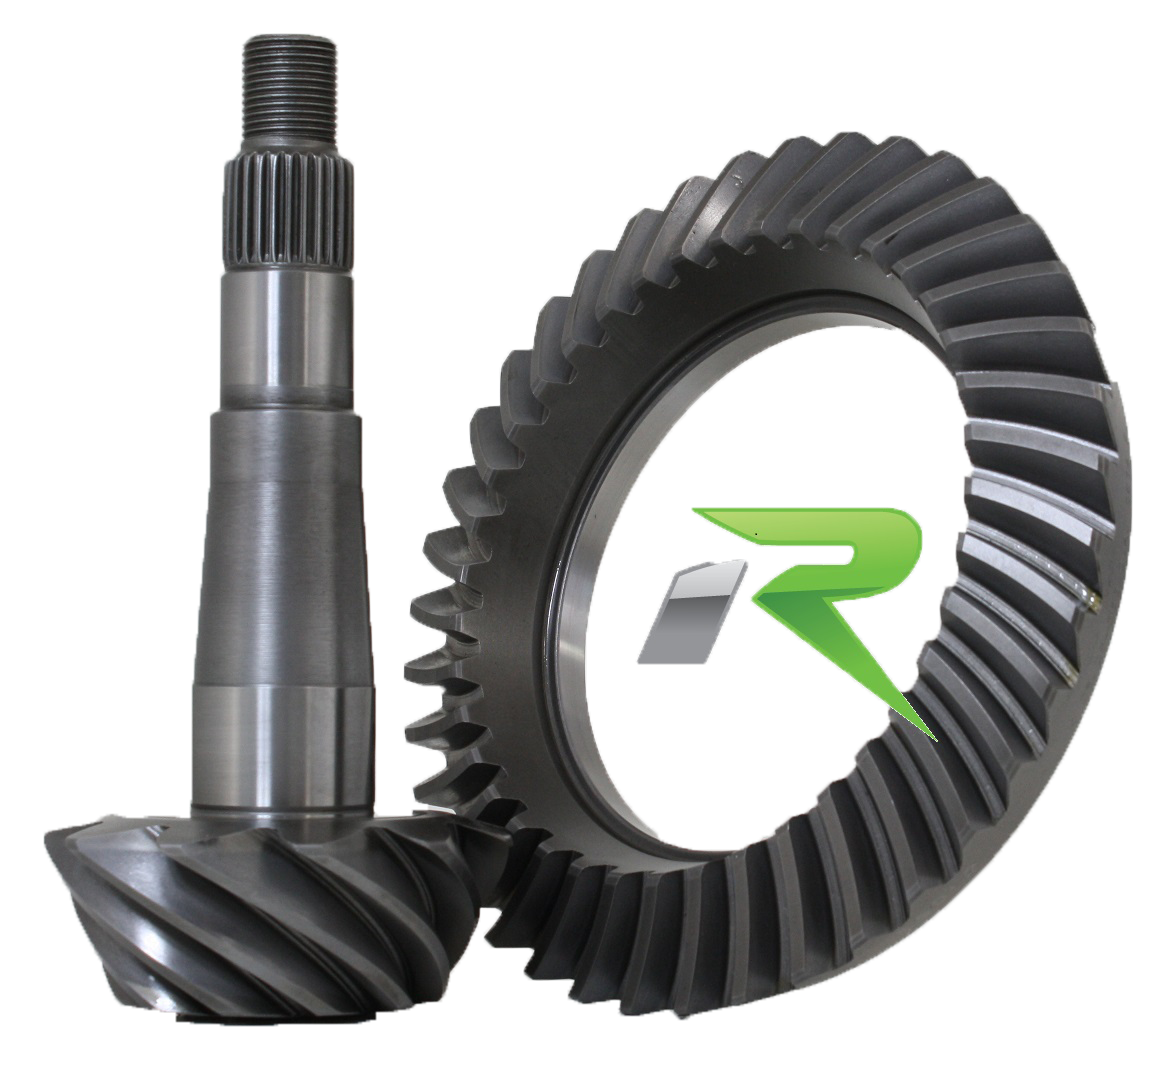 Chrysler 8.25 Inch 4.88 Ratio Dual Drilled Ring and Pinion Revolution Gear - HQ Offroad